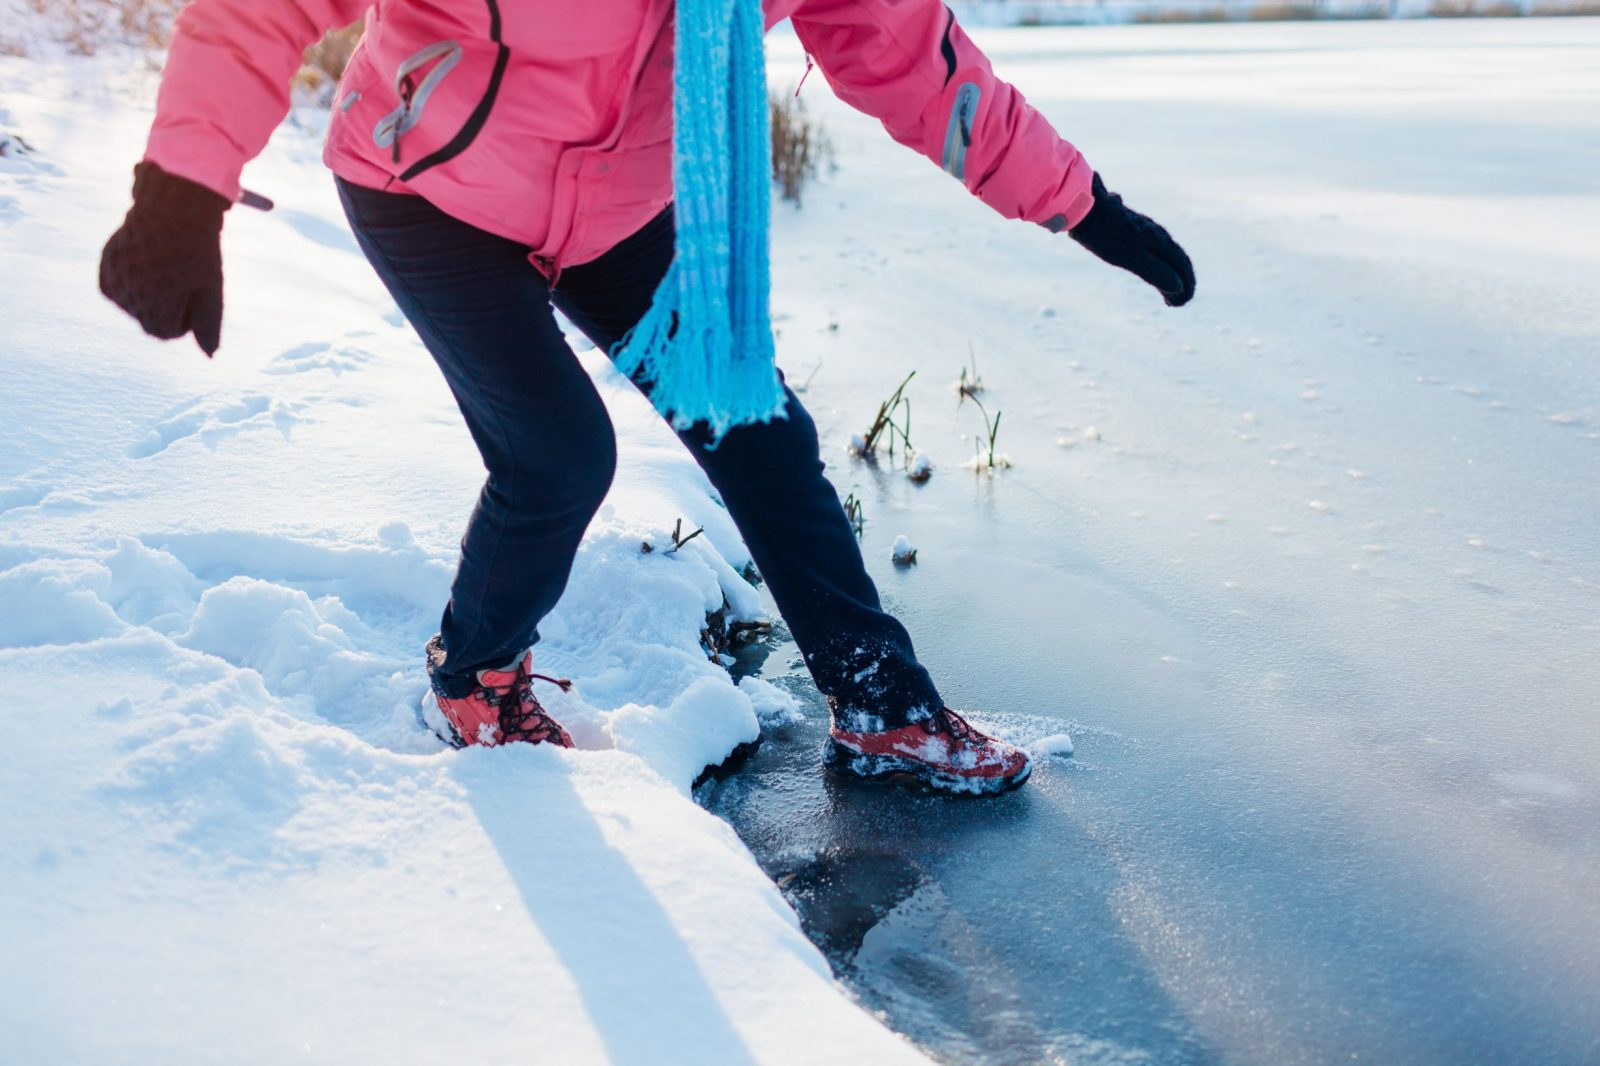 SNC Reminds Residents to Be Cautious of Ice Conditions